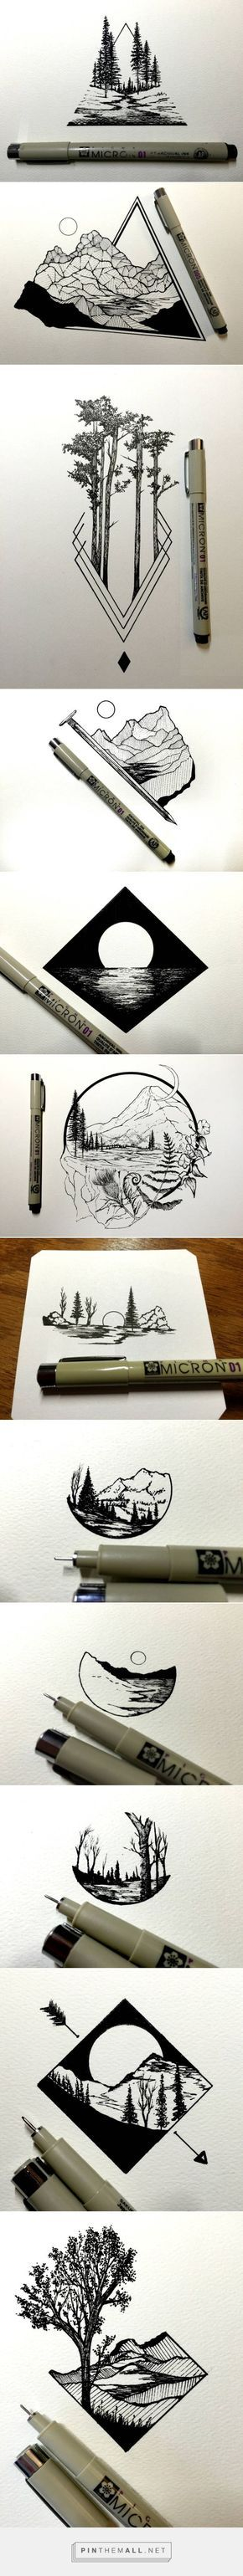 Tatto Ideas 2017 Daily Drawings by Derek Myers Fubiz Media a grouped images picture